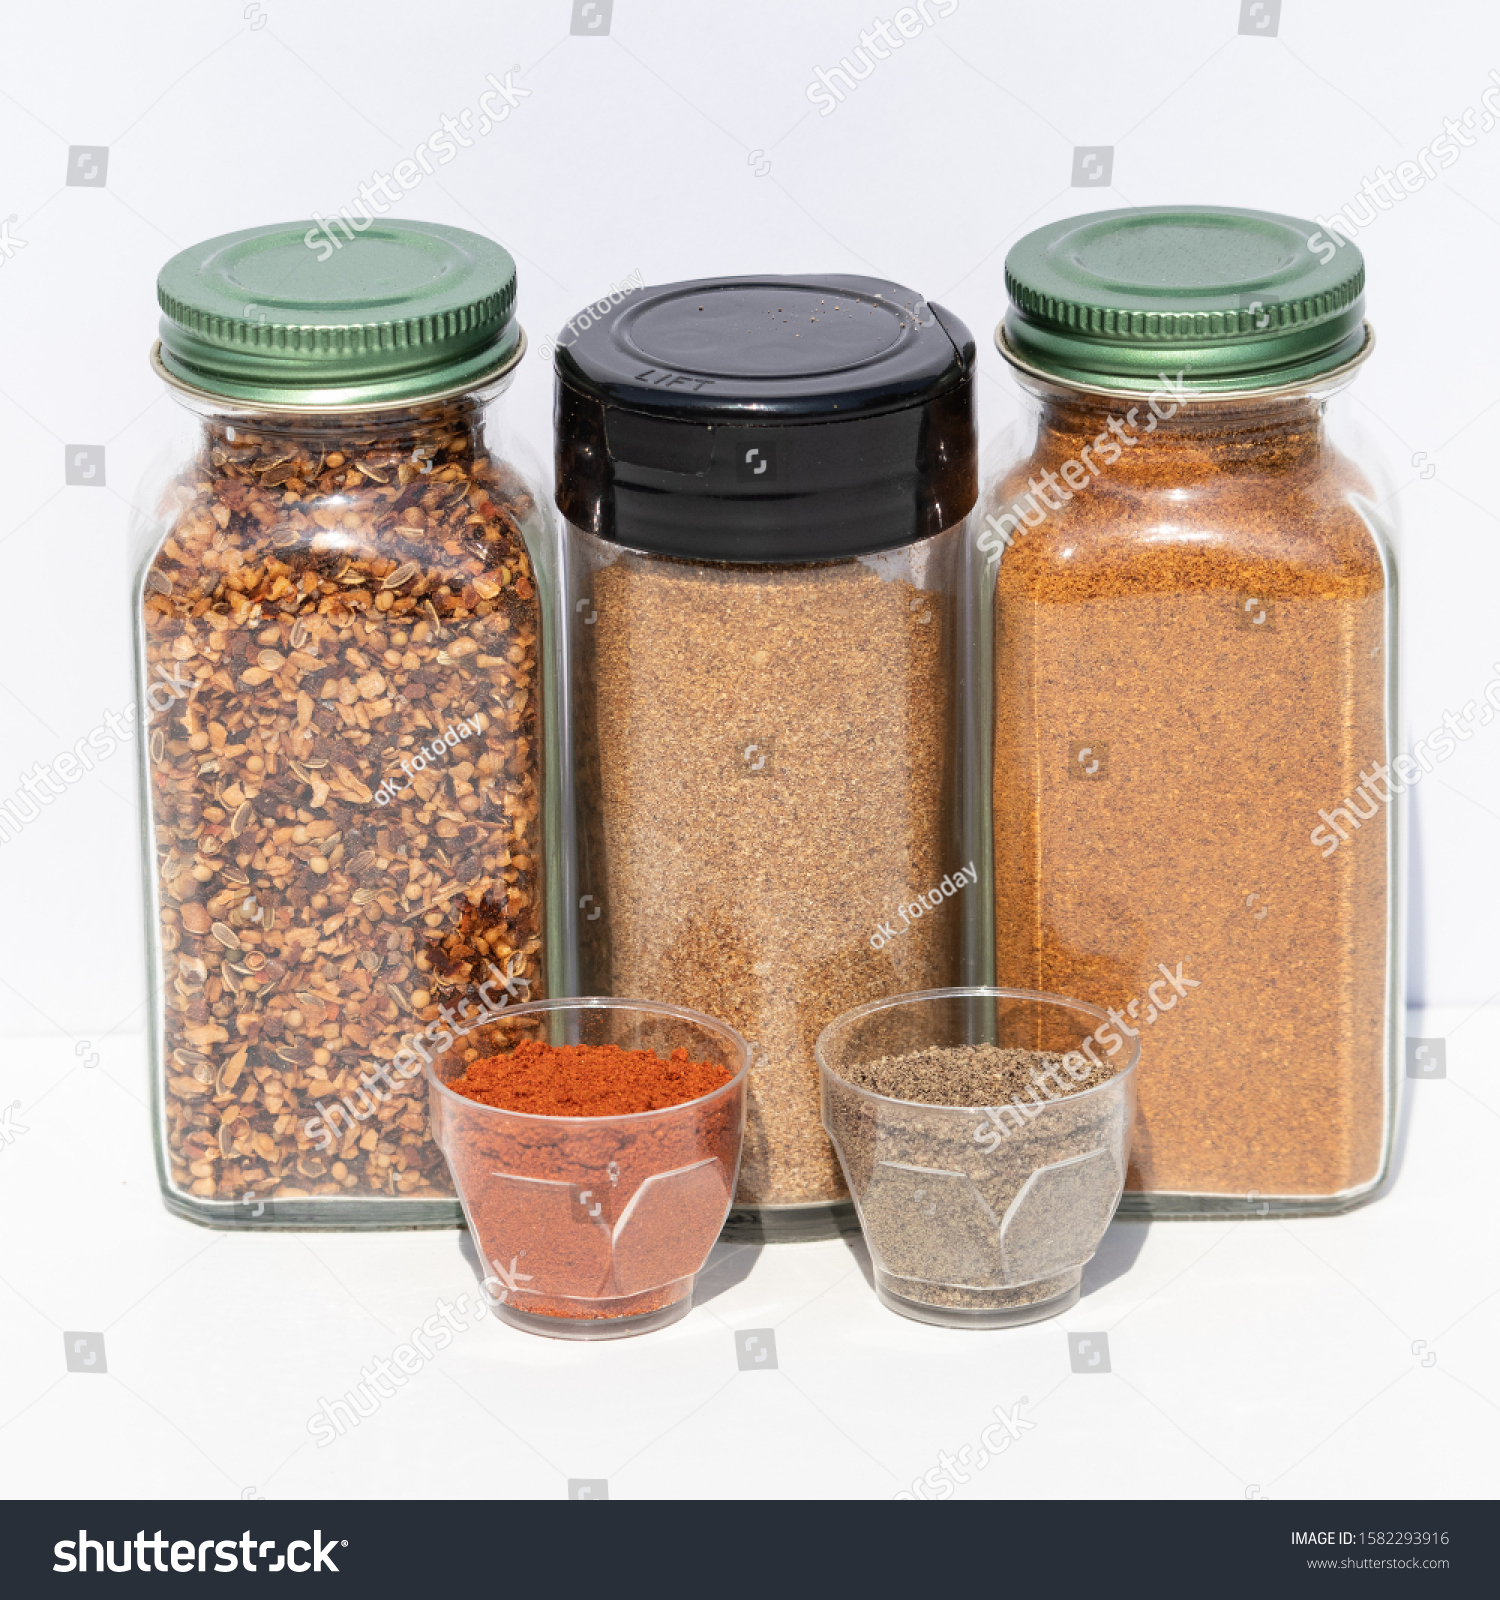 stock-photo-three-jars-with-spices-of-di